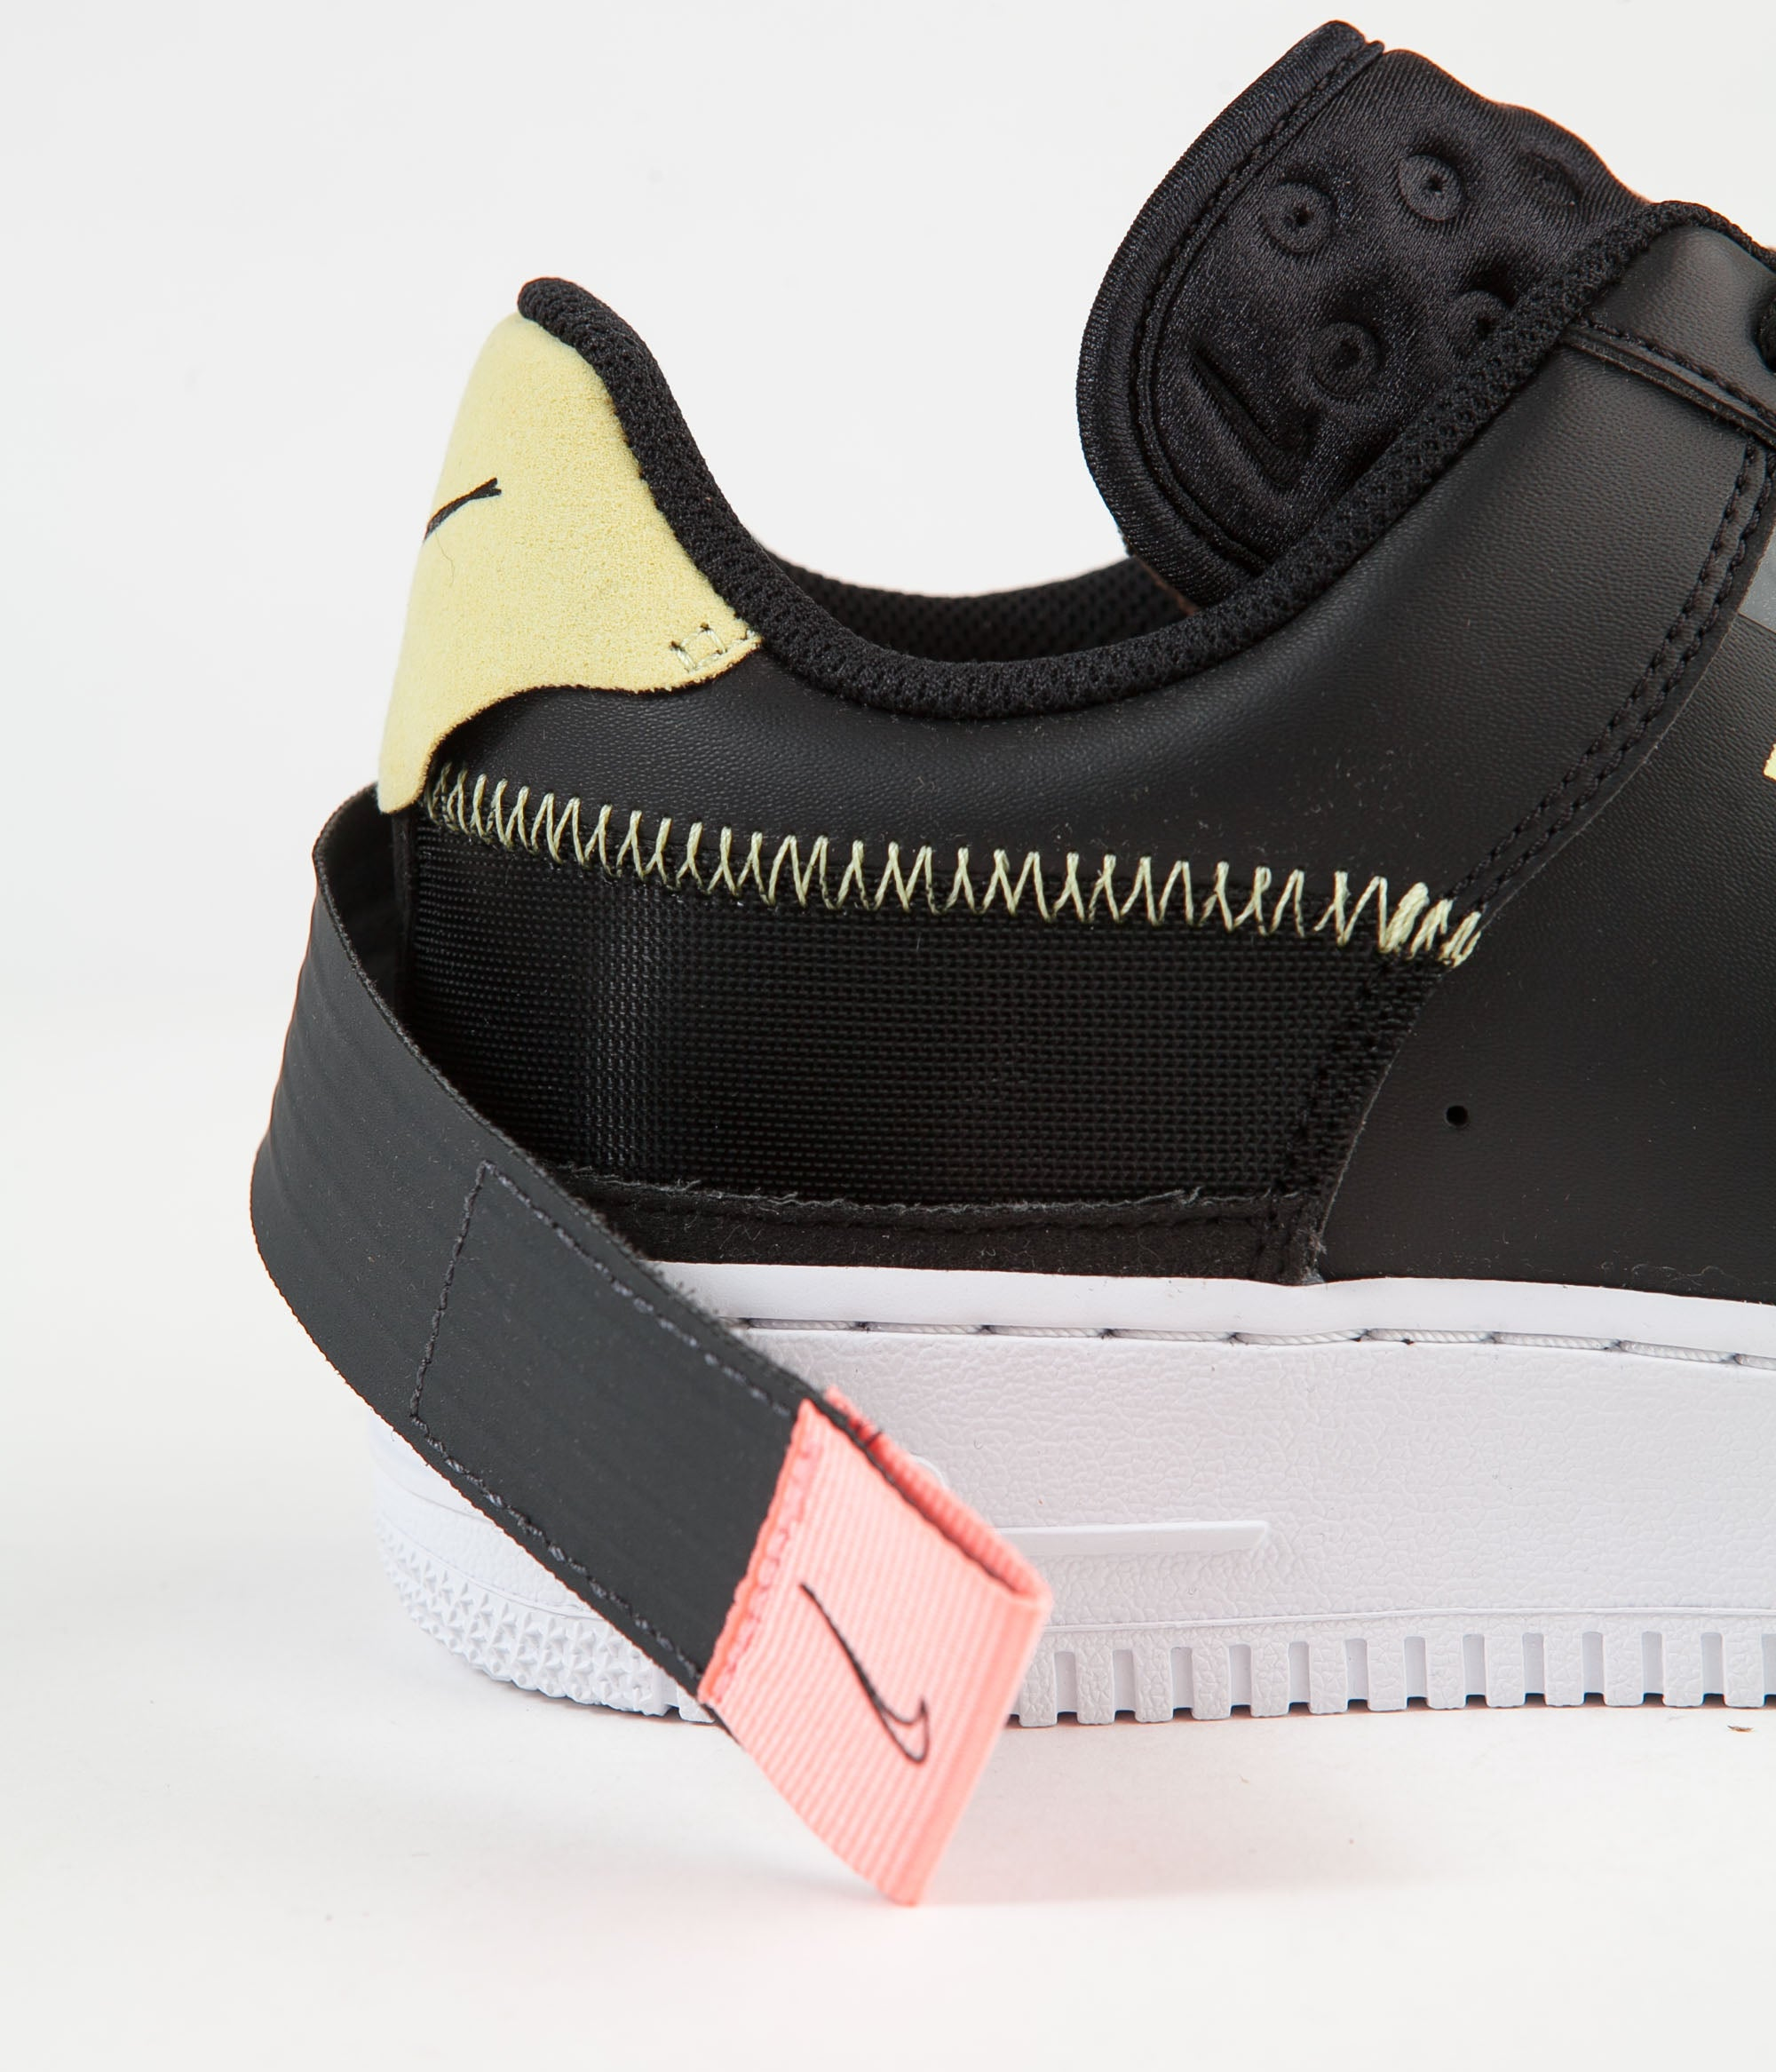 Nike Air Force 1 Type Shoes - Black